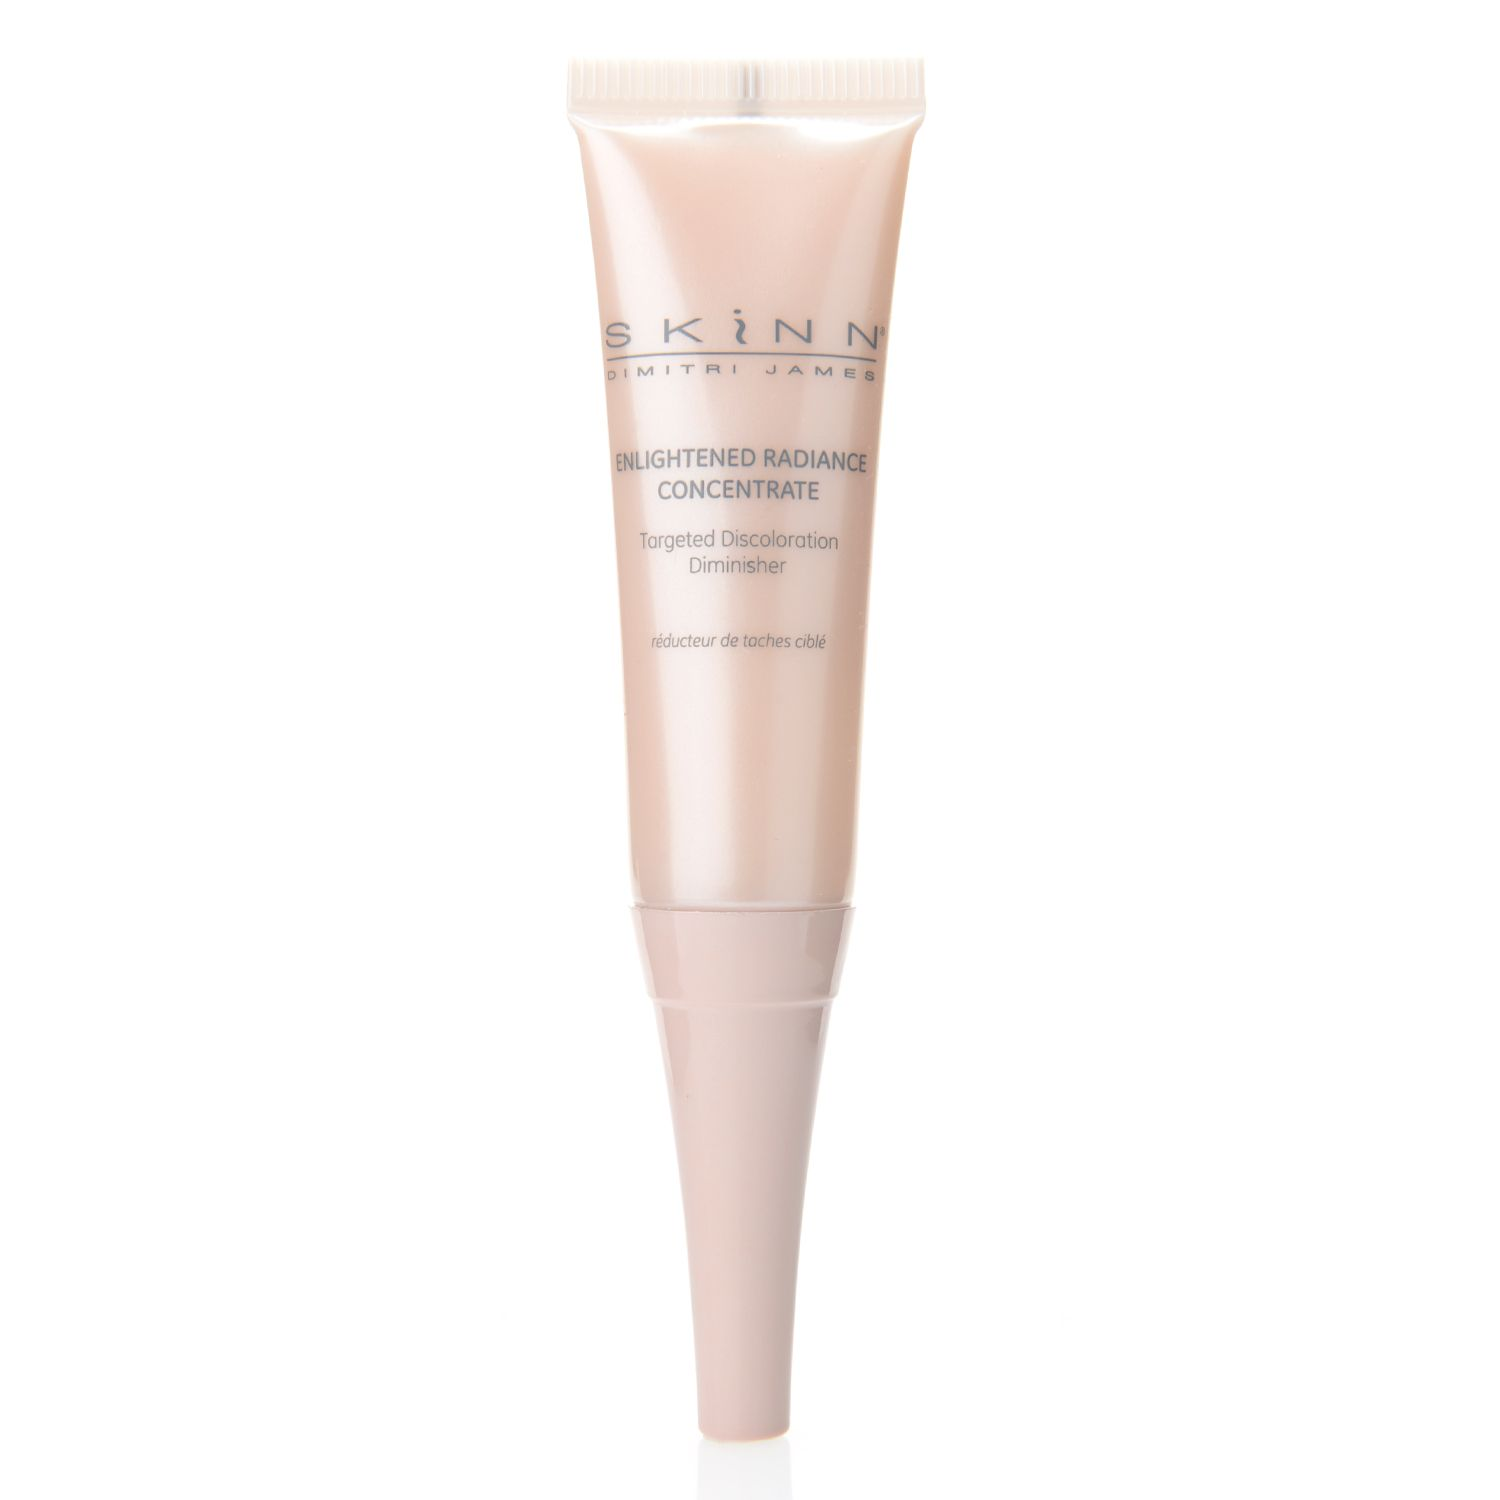 311-761- Skinn Cosmetics Enlightened Radiance Concentrate 0.34 oz